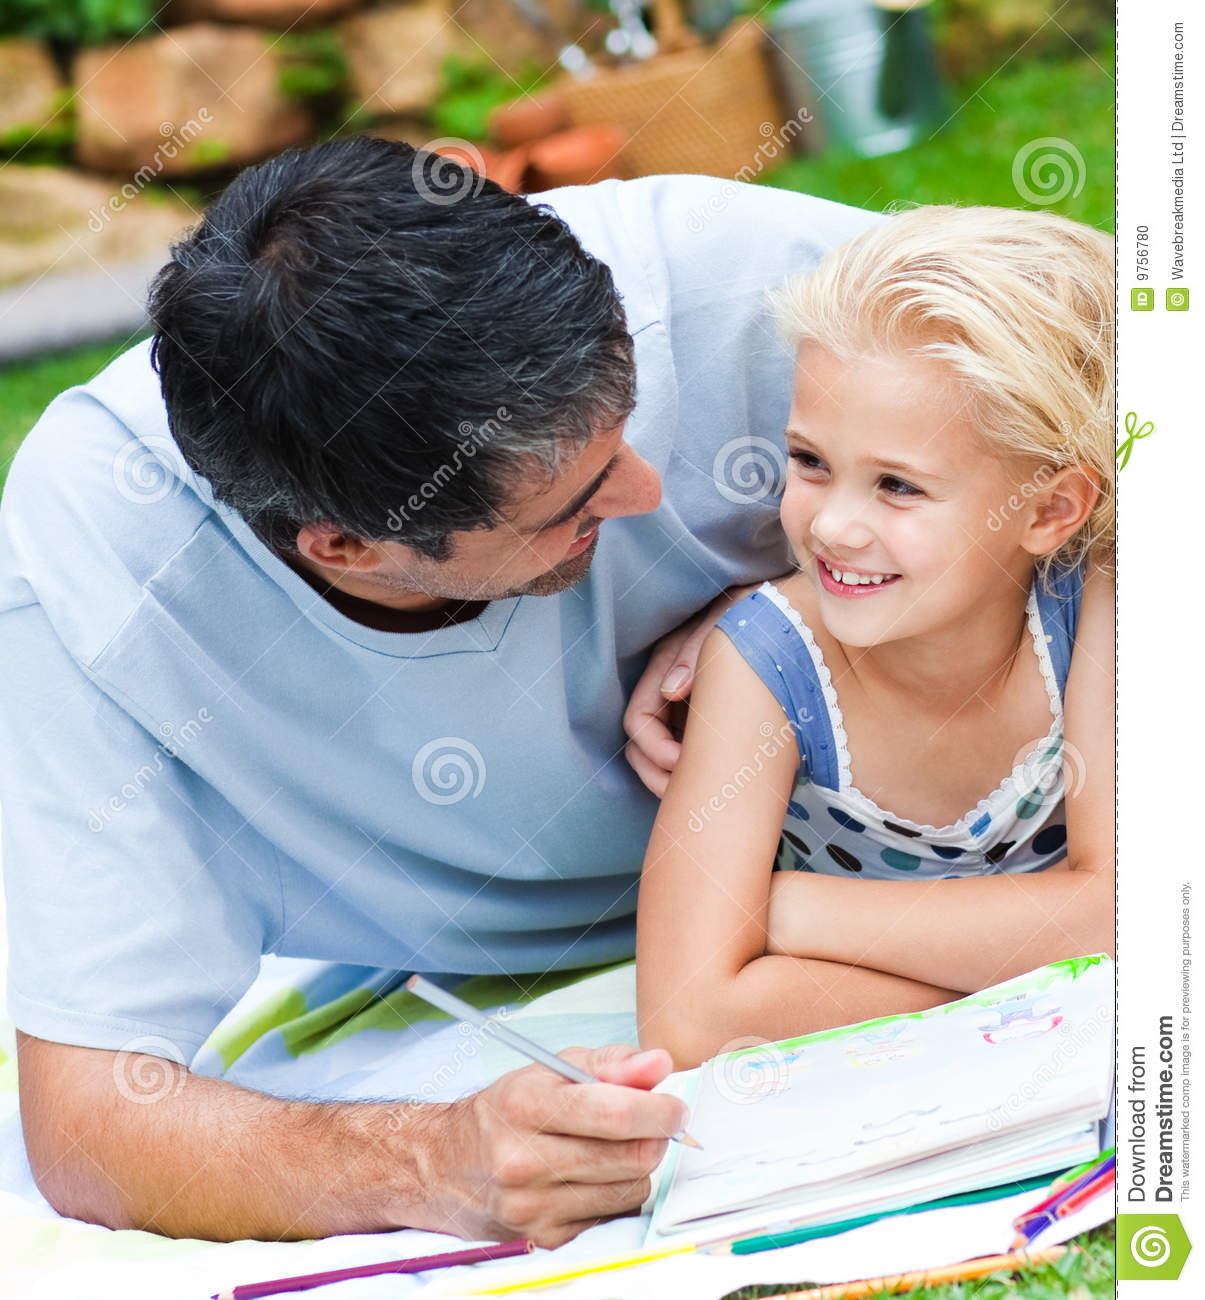 Dad And Daughter Doing Homework In A Garden Stock Photo - Image ...